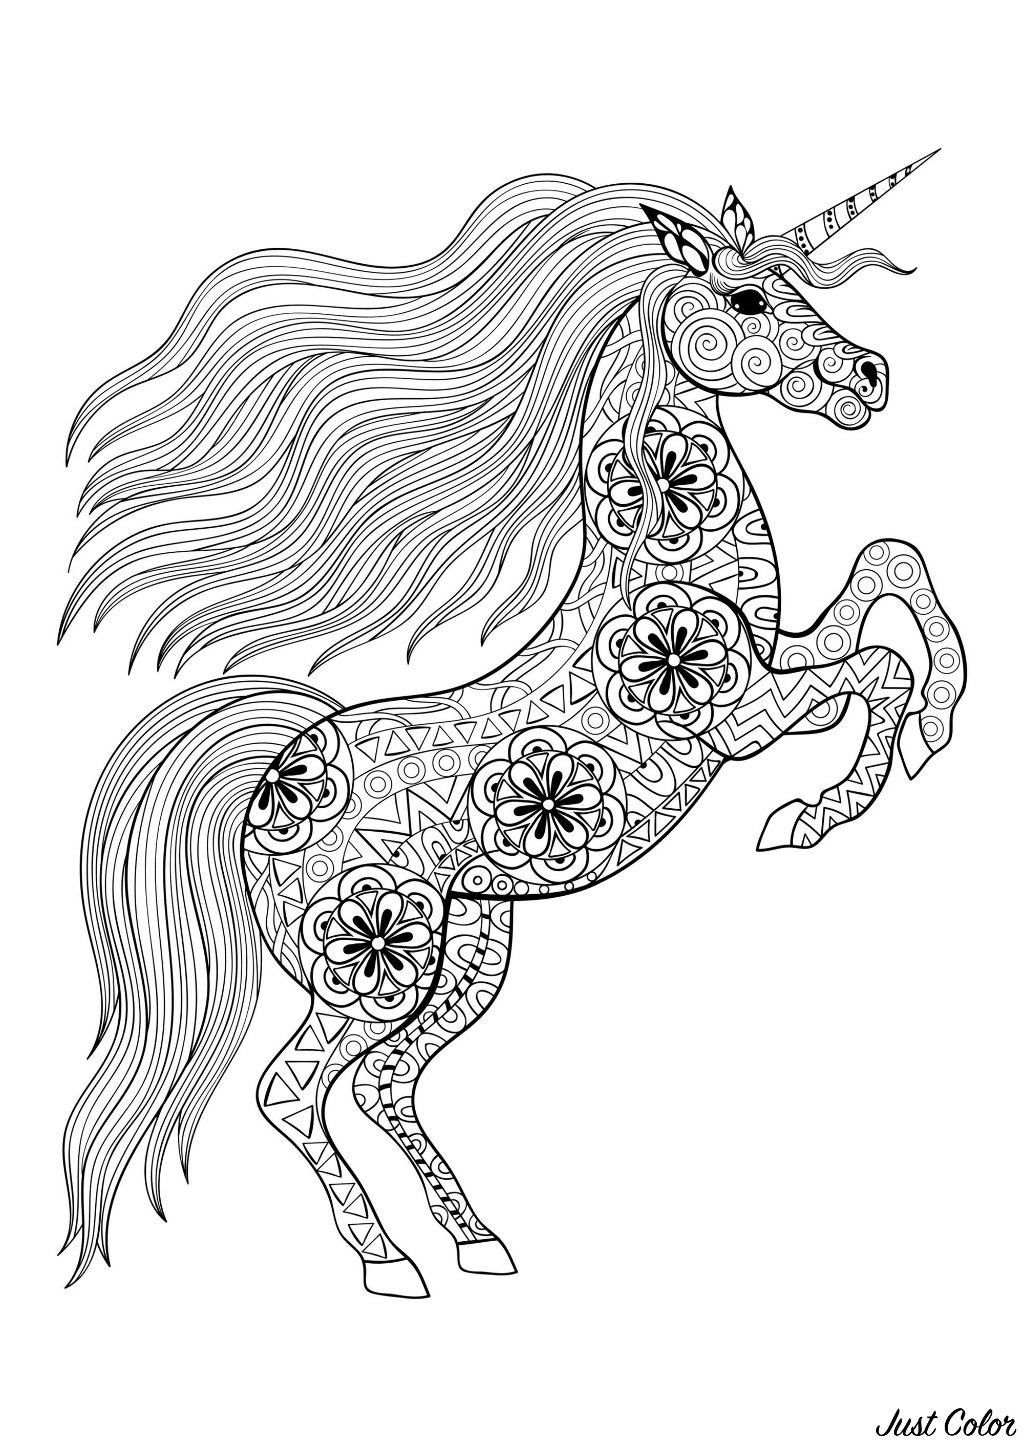 Licorne On Its Two Back Legs Licornes Coloriages Difficiles